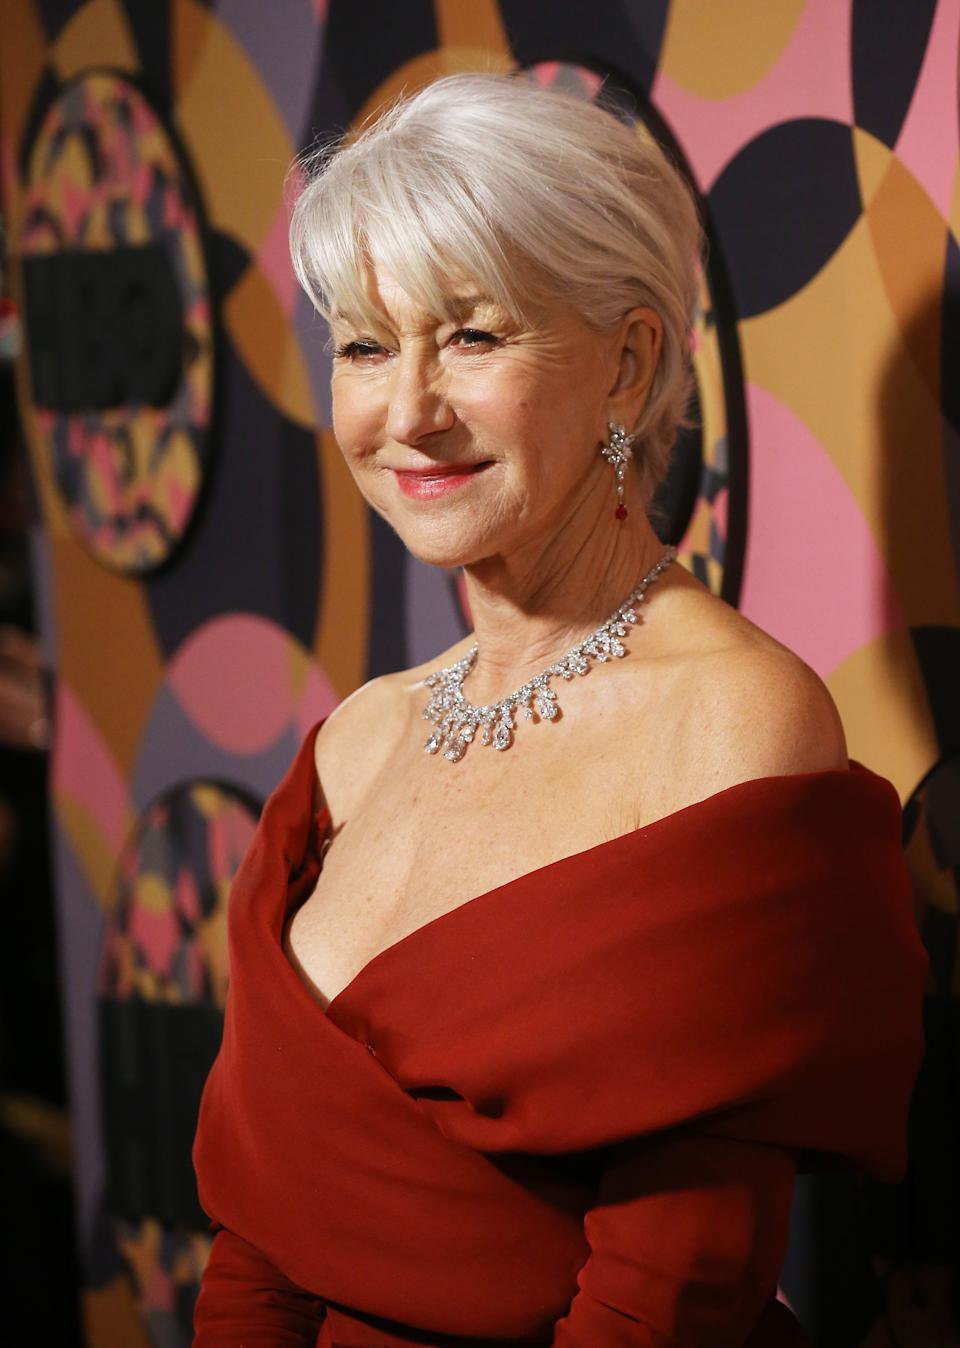 LOS ANGELES, CALIFORNIA - JANUARY 05:  Helen Mirren attends the HBO's Official Golden Globes After Party held at Circa 55 Restaurant on January 05, 2020 in Los Angeles, California. (Photo by Michael Tran/FilmMagic)